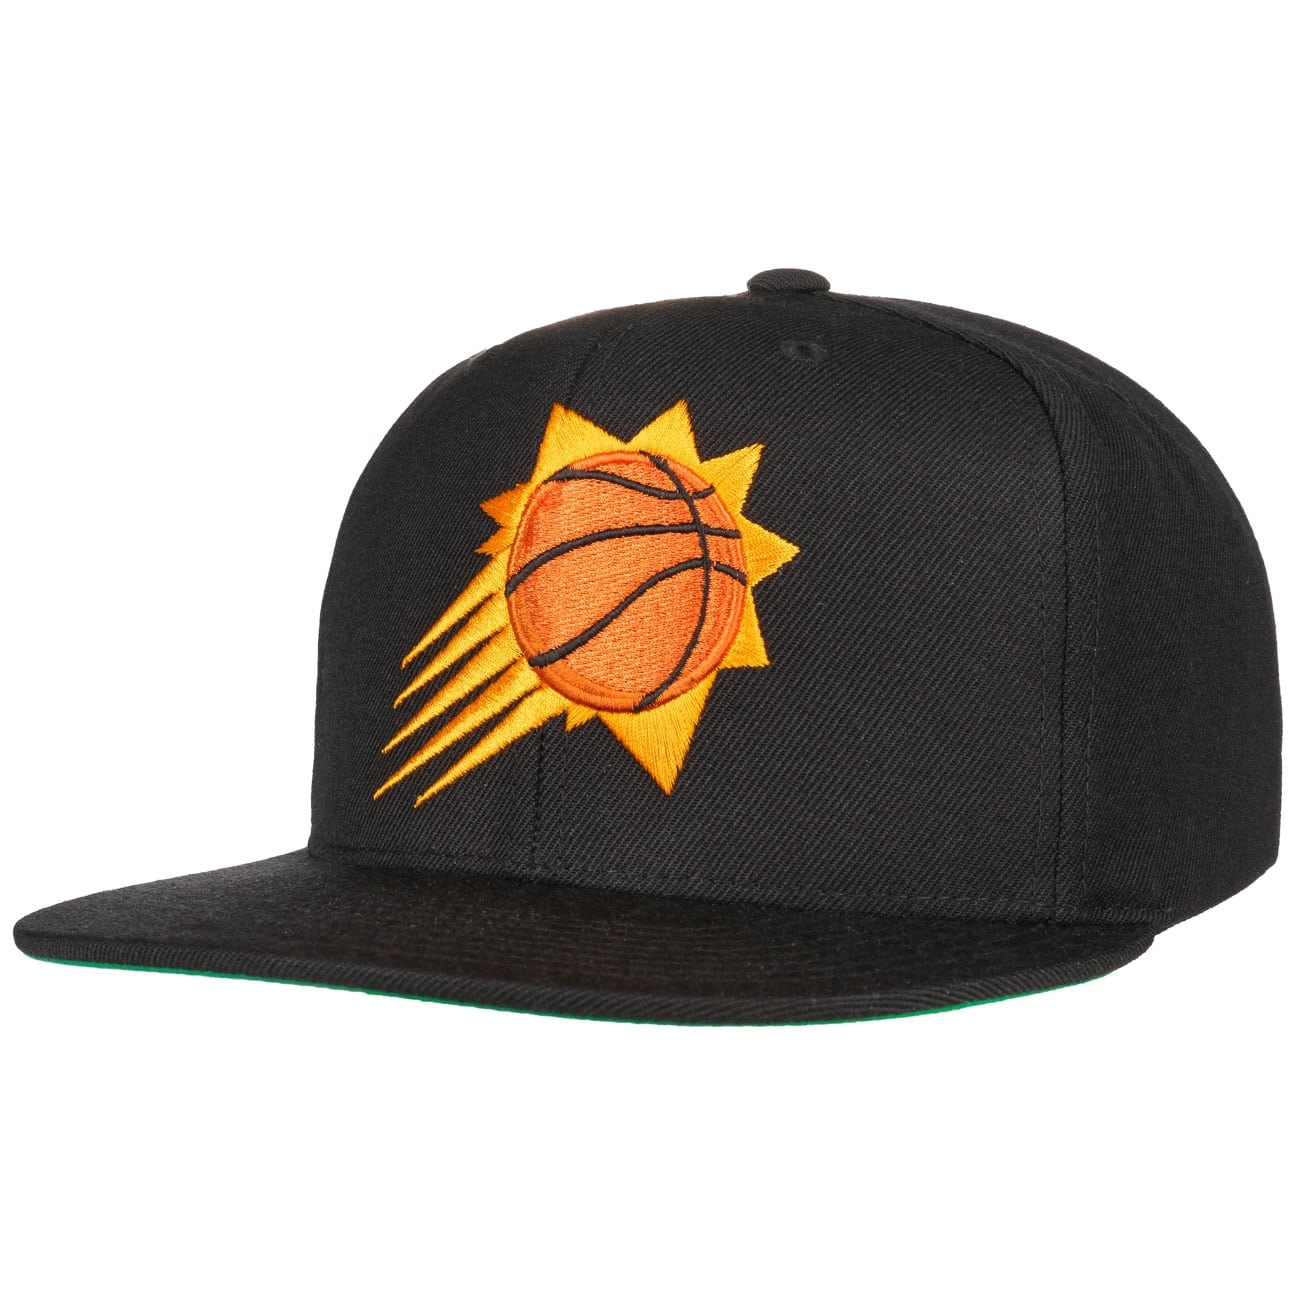 wool-solid-2-suns-by-mitchell-ness